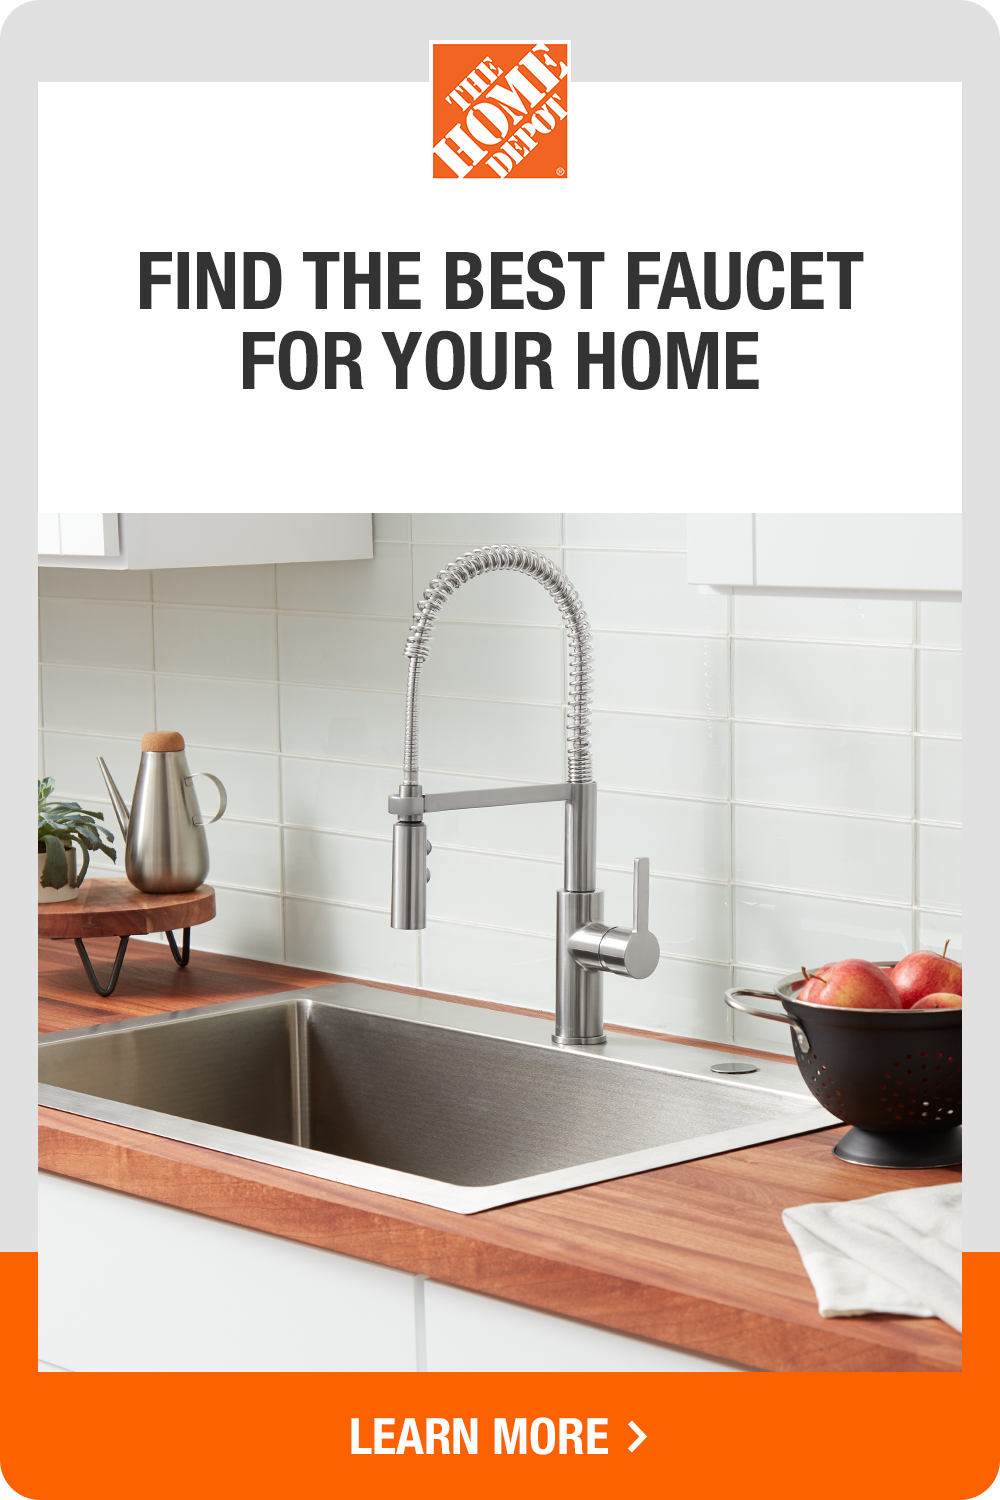 Find The Right Style To Refresh Your Kitchen With Faucets From Home Depot Single Handle Faucet High Arc